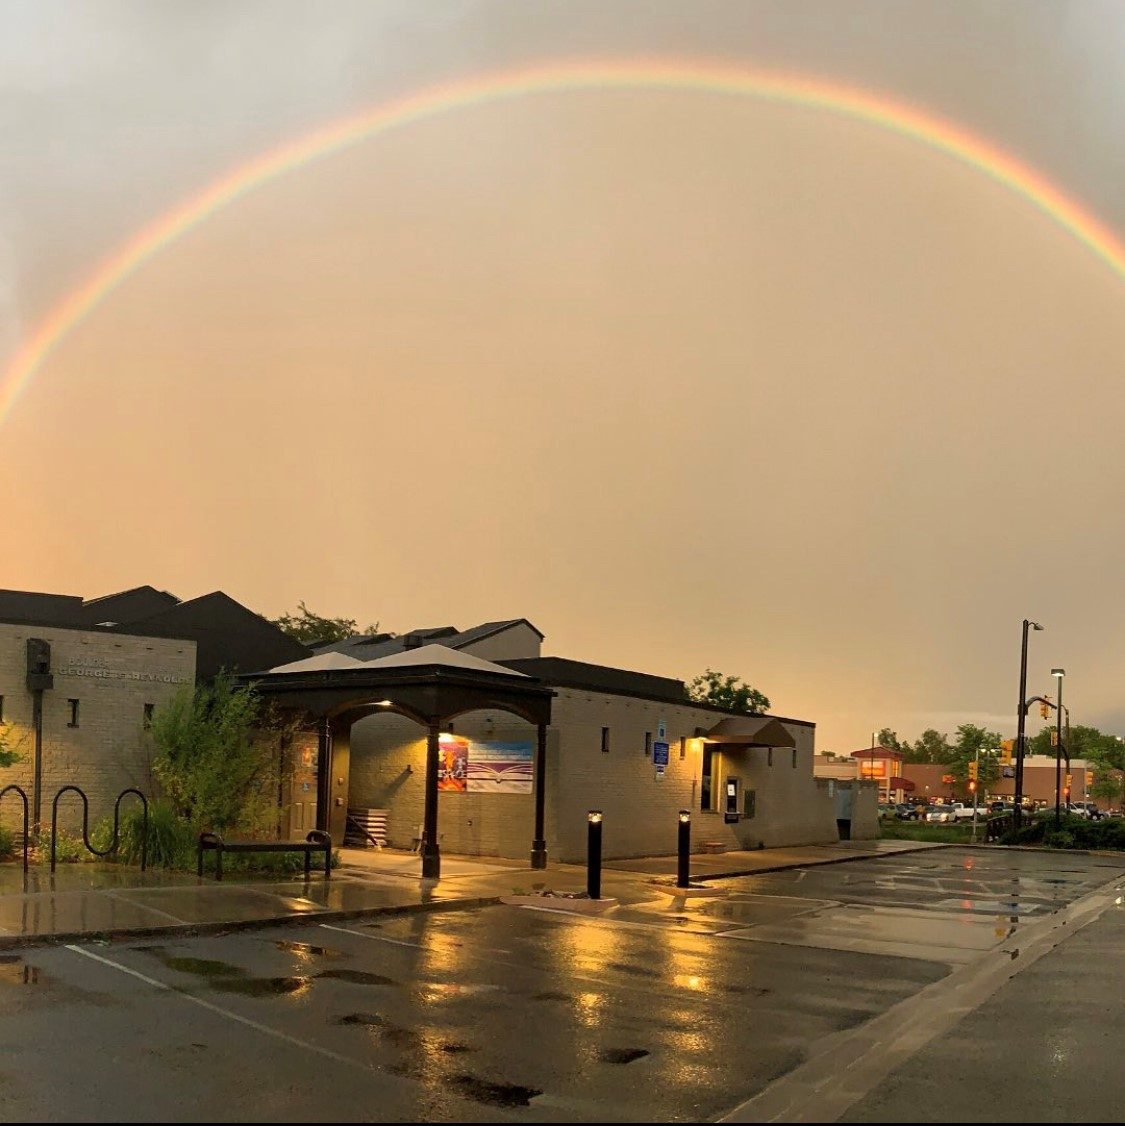 Reynolds Branch Library and Rainbow